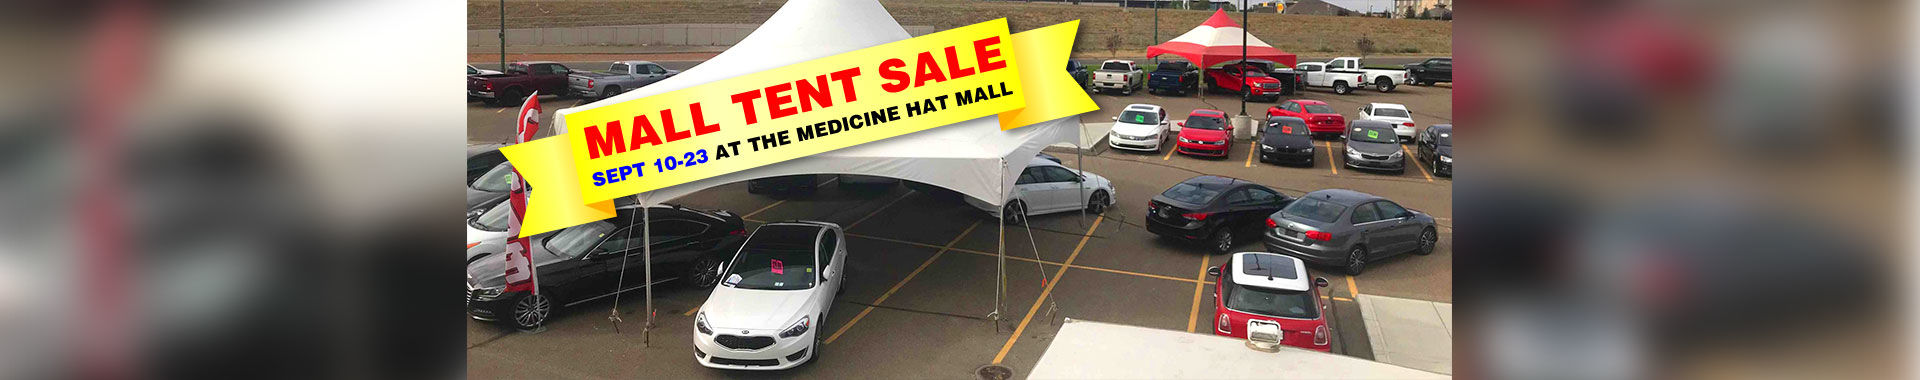 September Mall Tent Sale